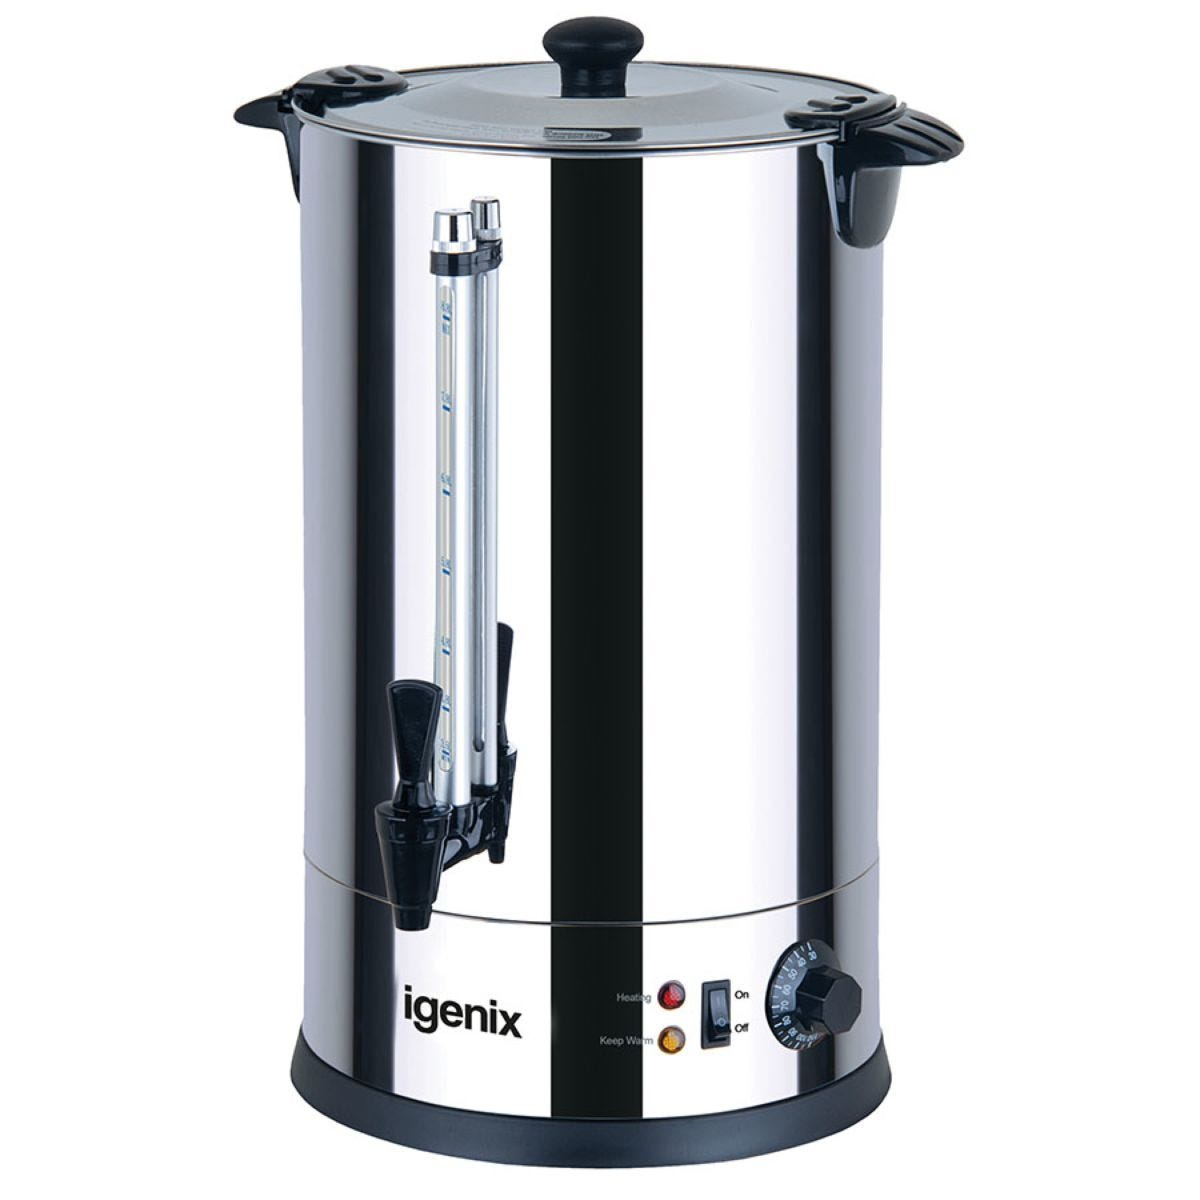 Igenix IG4030 30L Hot Water 2500W Catering Urn – Stainless Steel